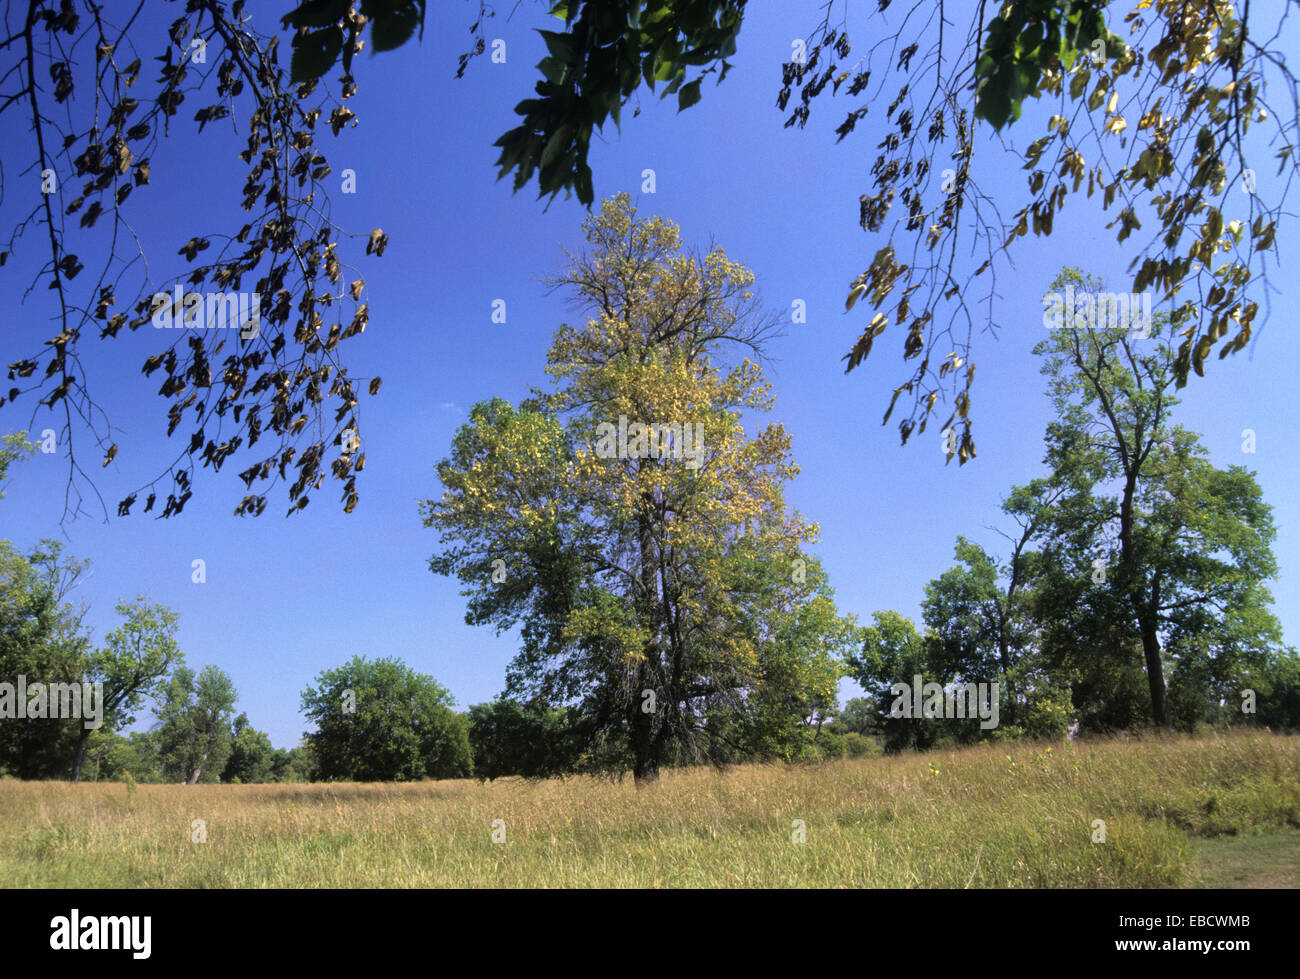 Transition meadow, Adams Homestead & Nature Preserve, Sioux City, Iowa. - Stock Image